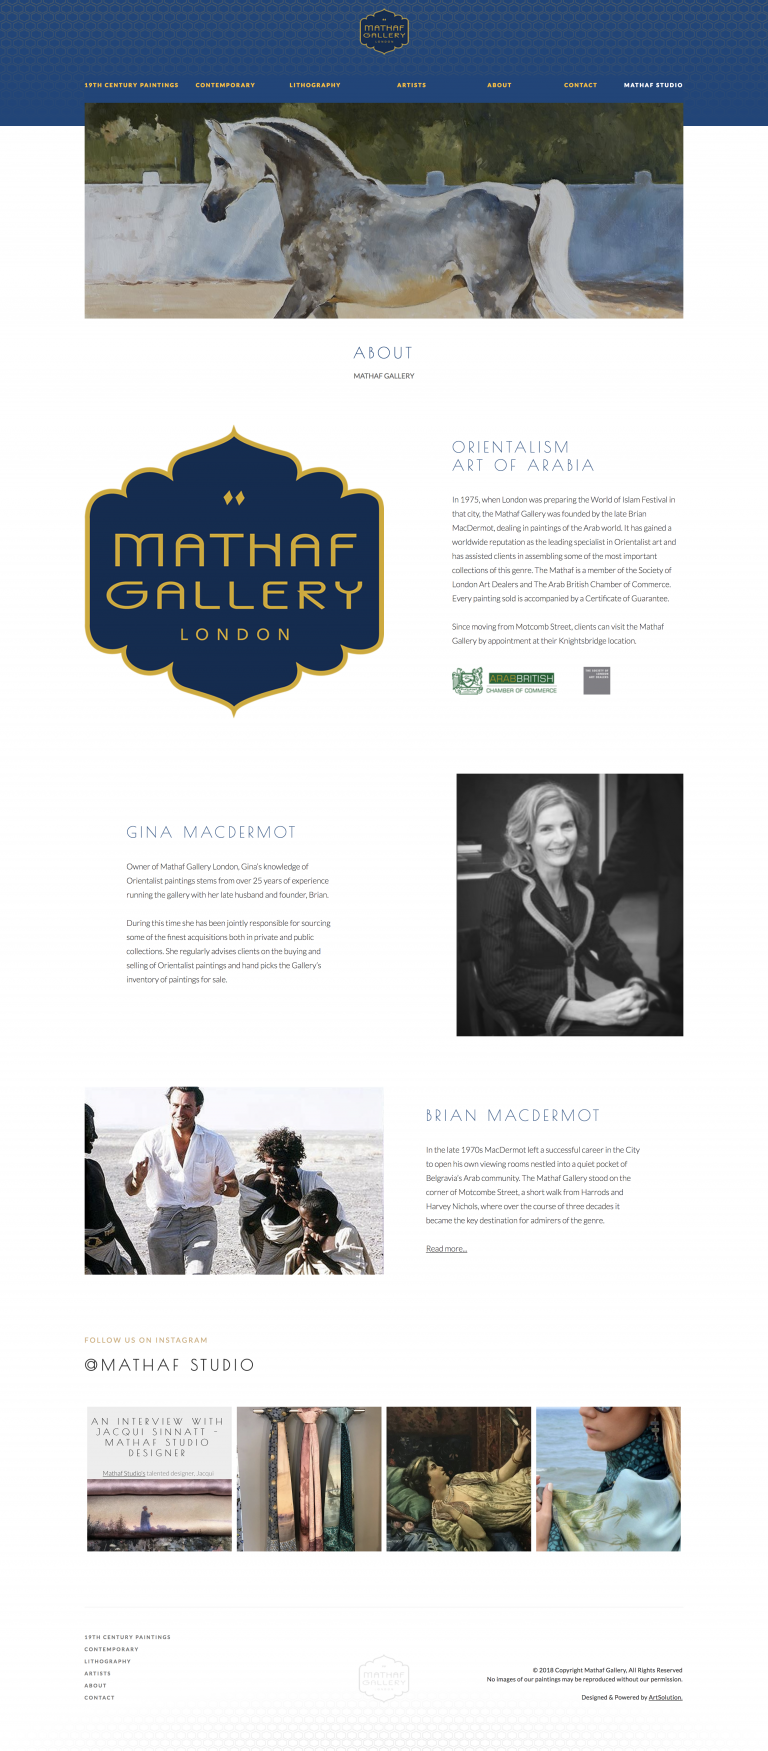 The Mathaf Gallery